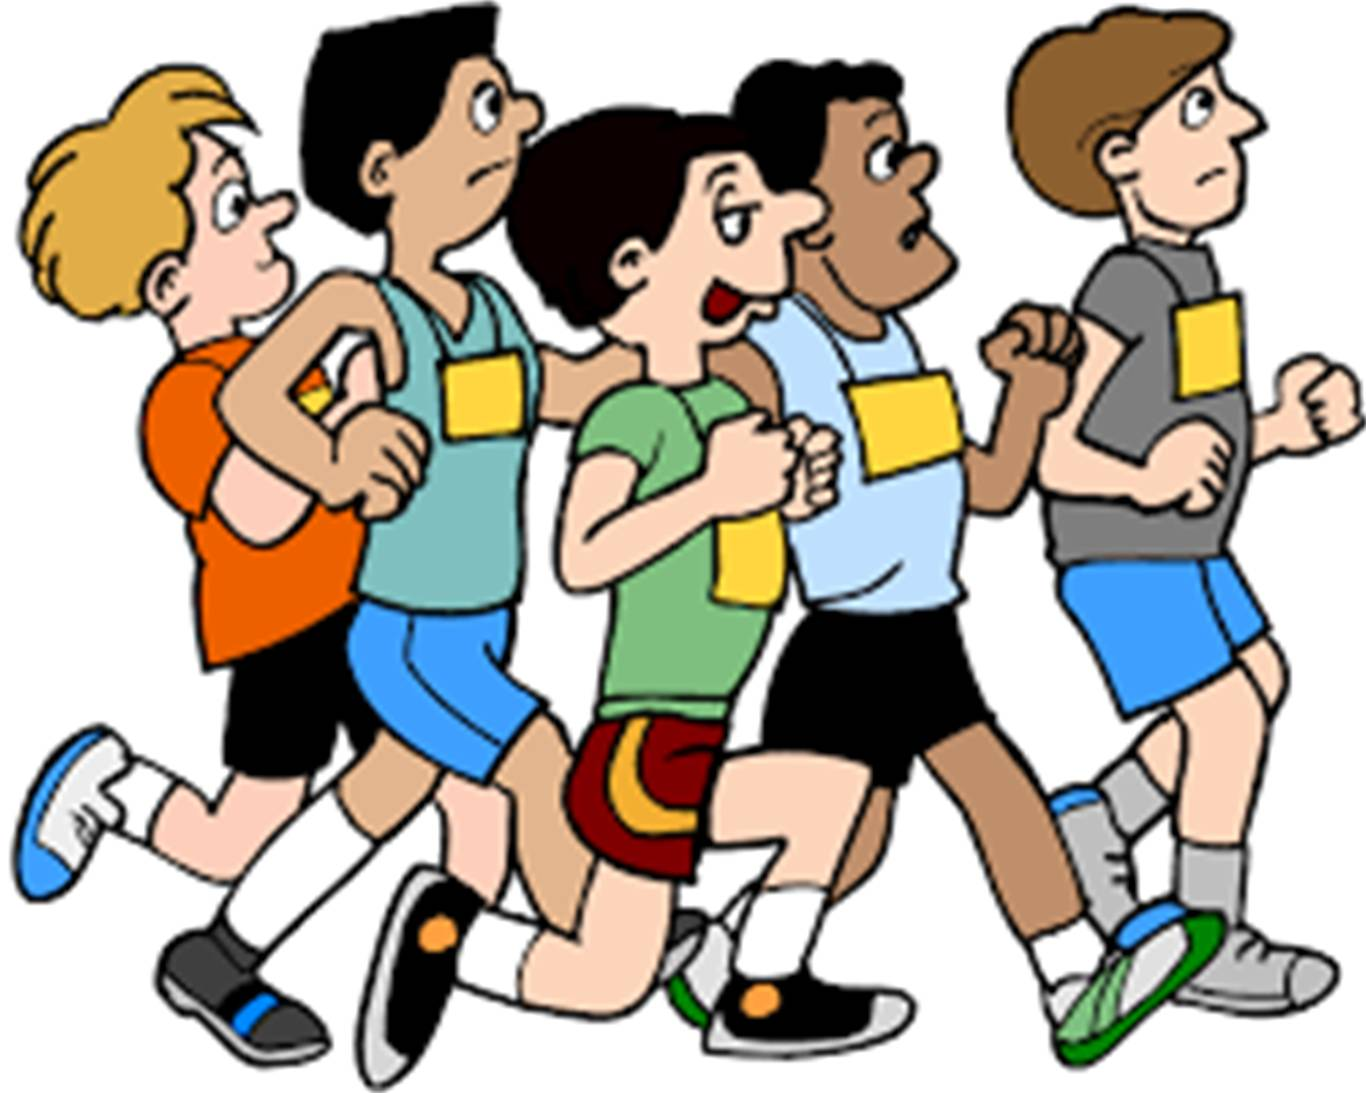 Race clipart cross country. Free team running cliparts